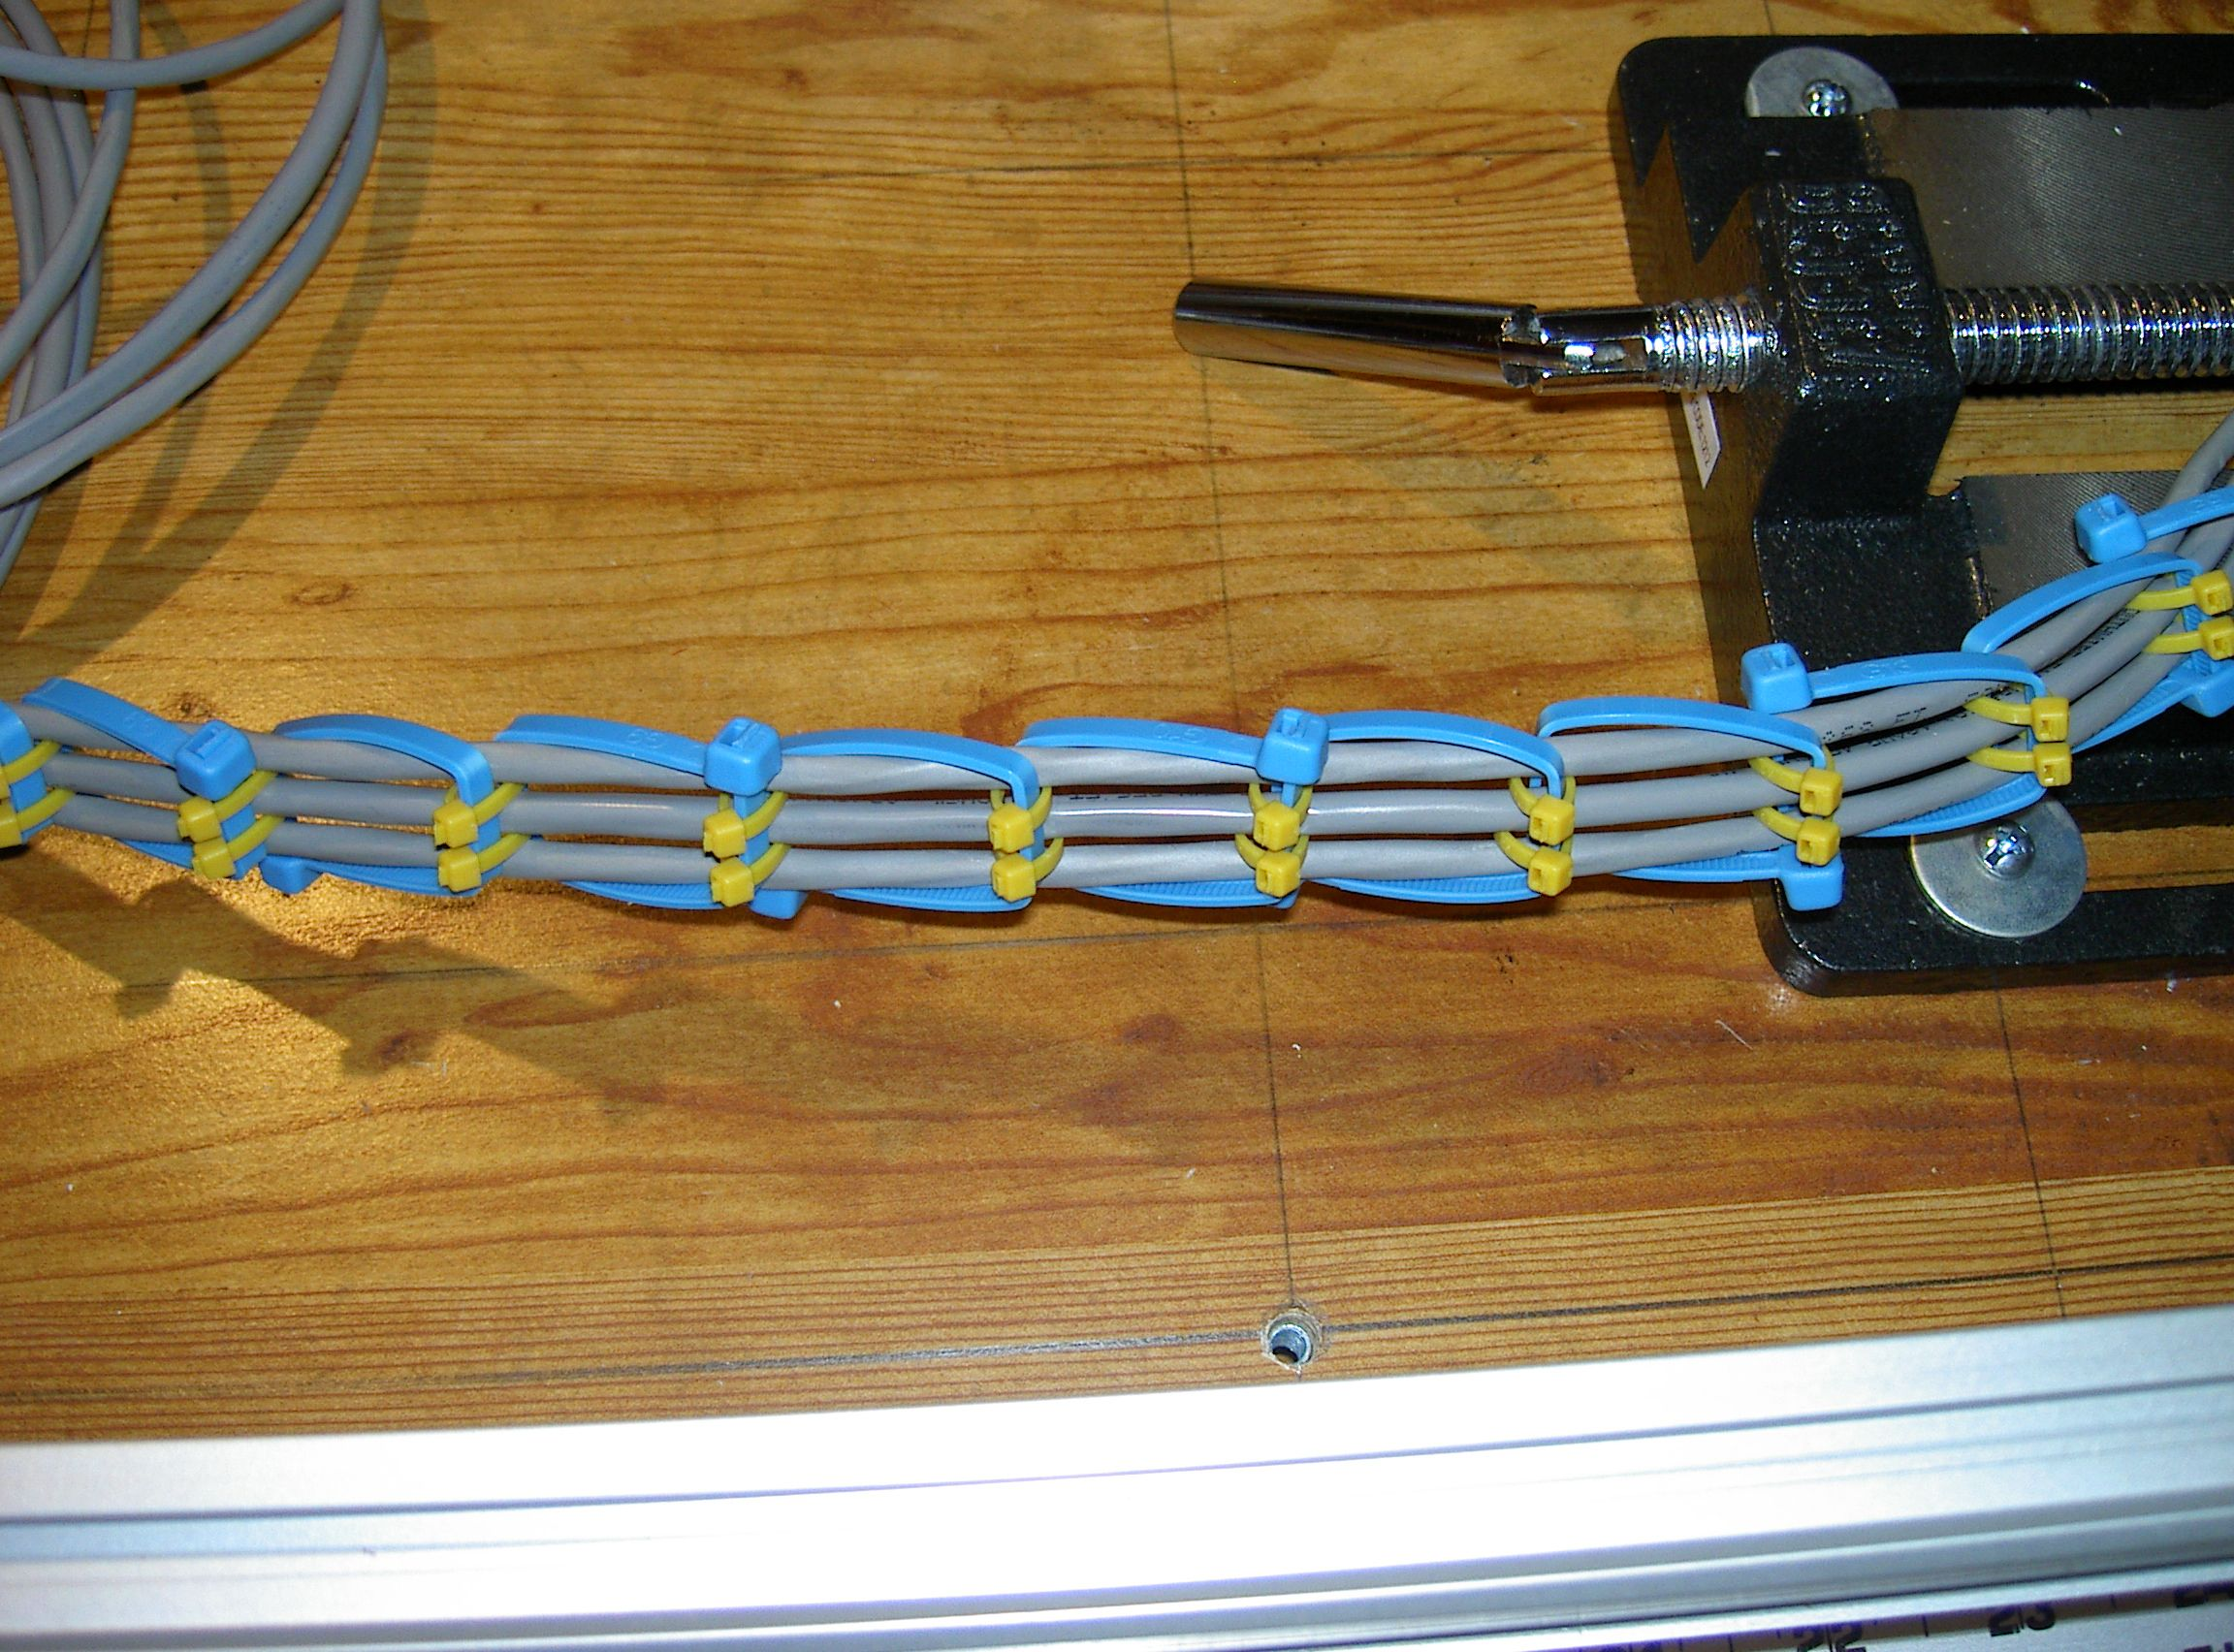 Pin By Eric Hammarstrom On Cnc Router Zip Ties Household Hacks